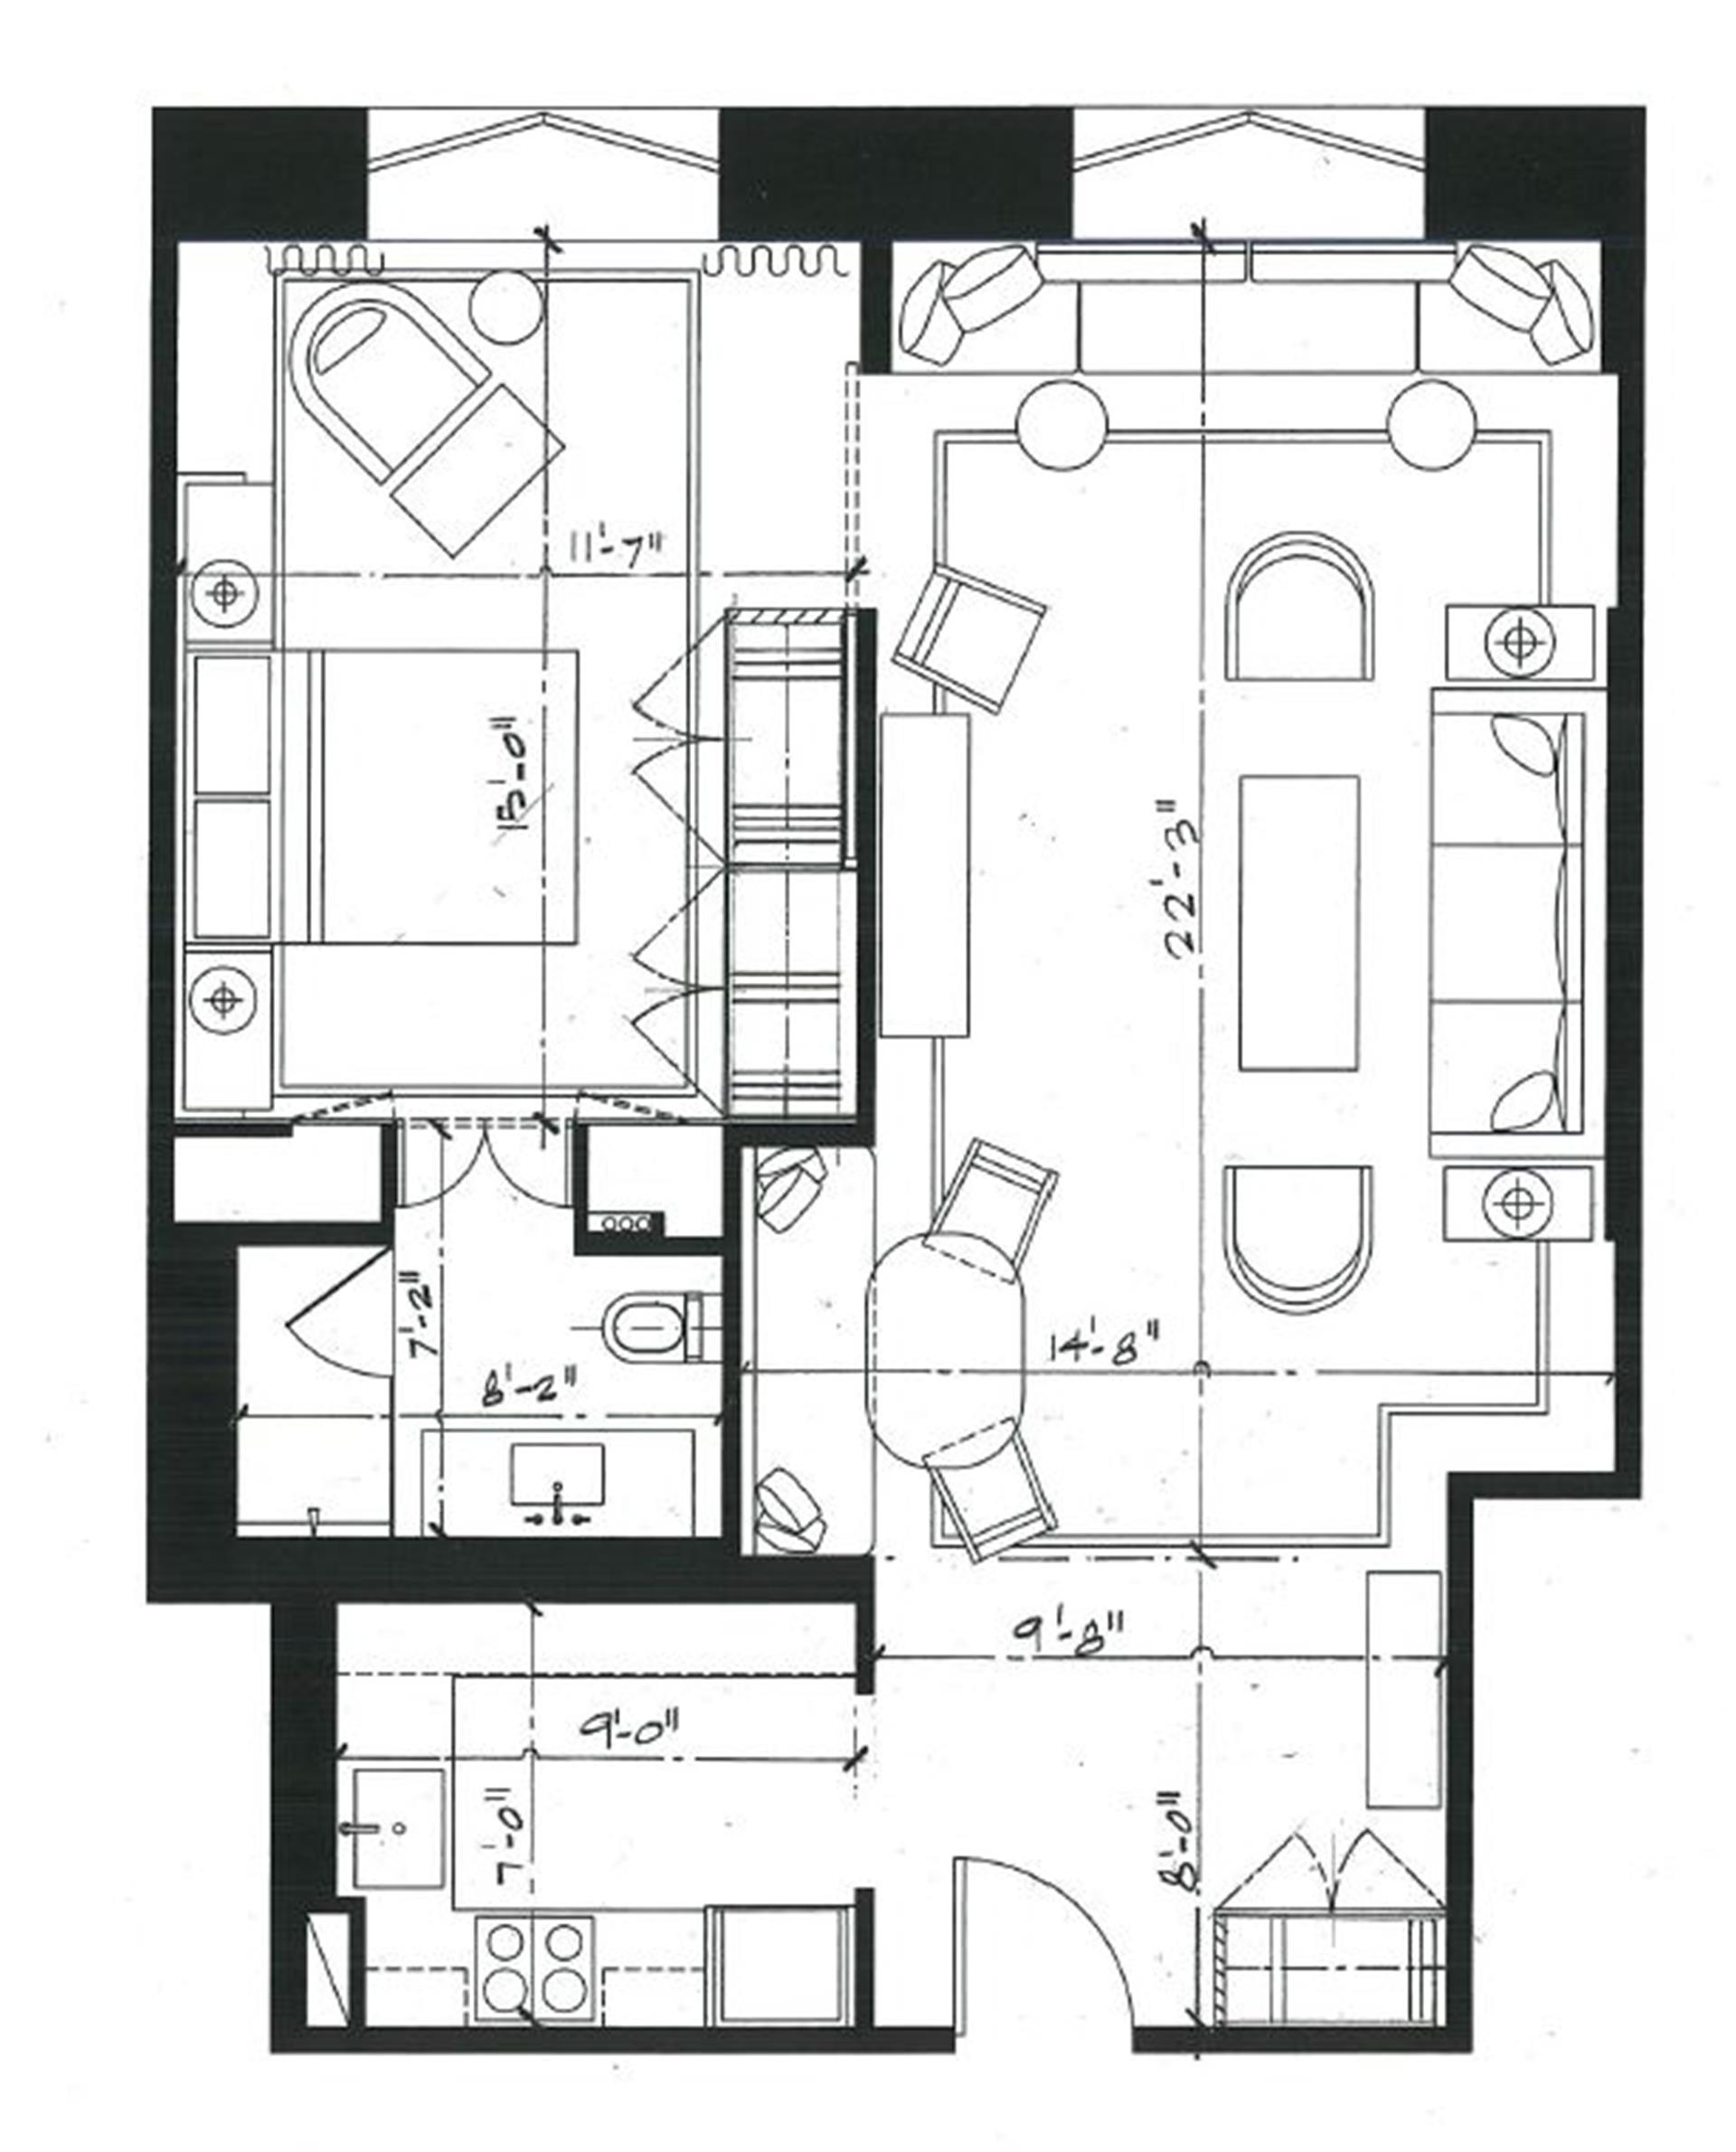 Floor plan of 1001 Fifth Avenue, 3D - Upper East Side, New York